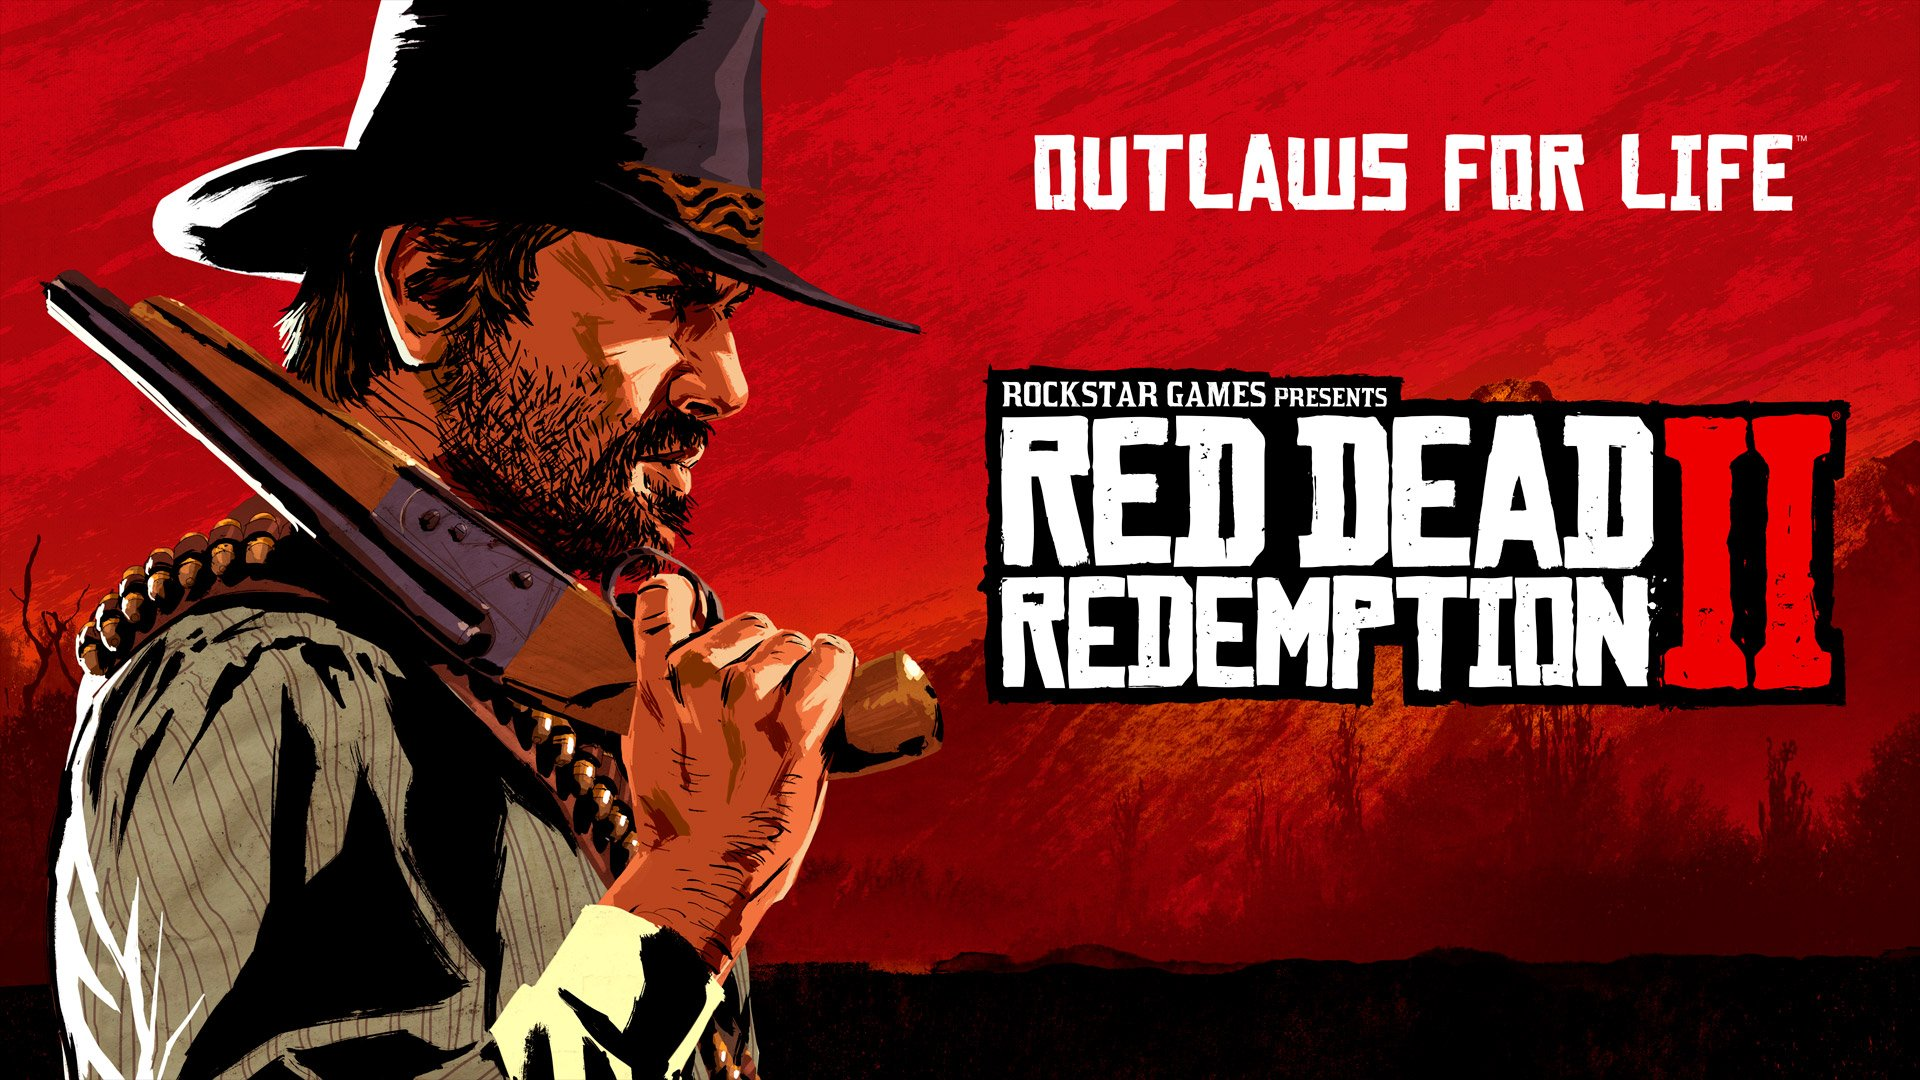 Red Dead Redemption 2  Pre-order and Pre-load now  Coming October 26 on PlayStation 4: https://t.co/l6ocmHc4f1 https://t.co/G1LCvY0Dym